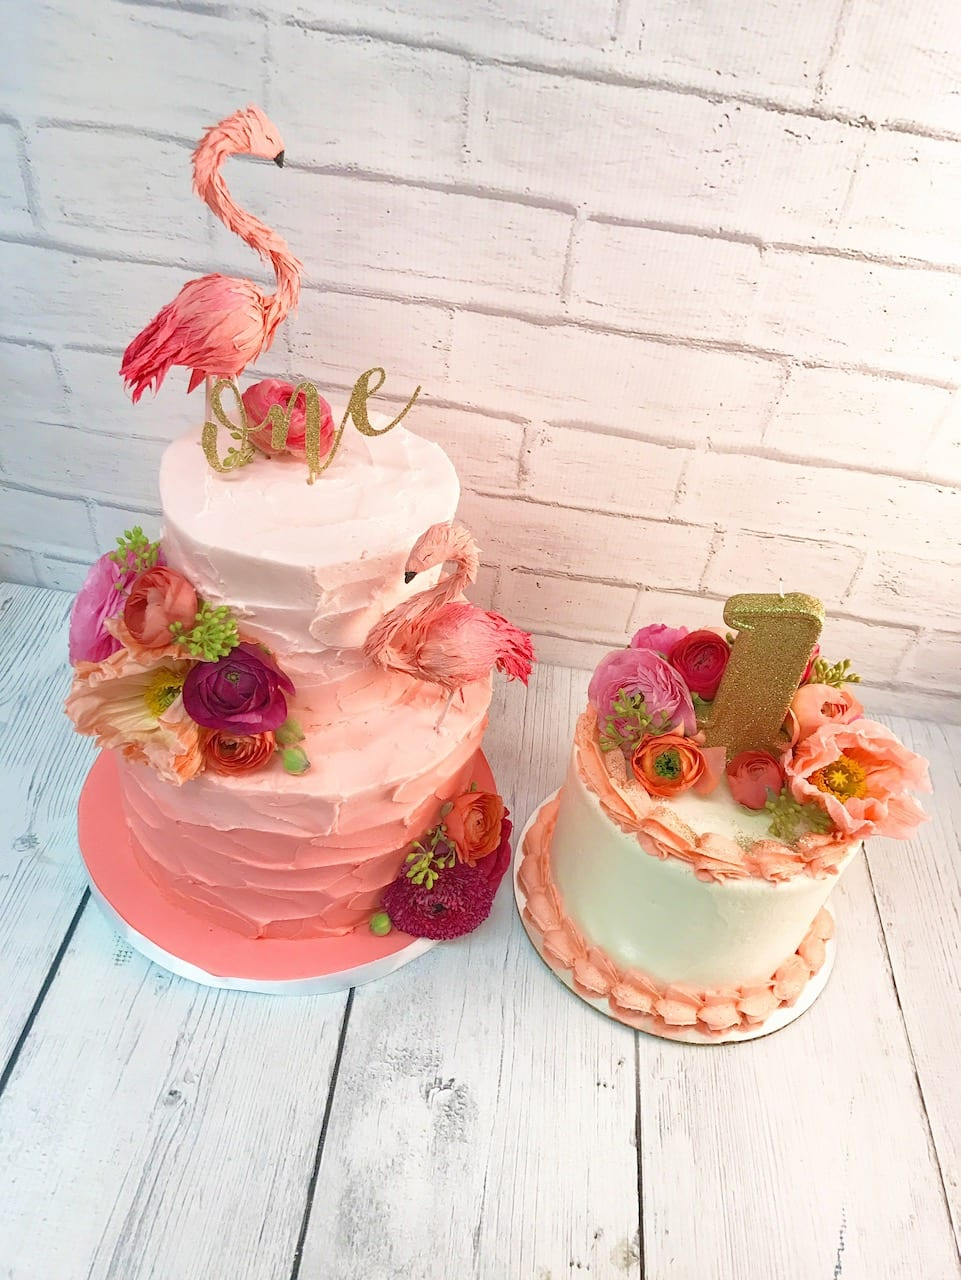 Ombre Pink Buttercream Stucco & Smash Cake with Fresh Flowers